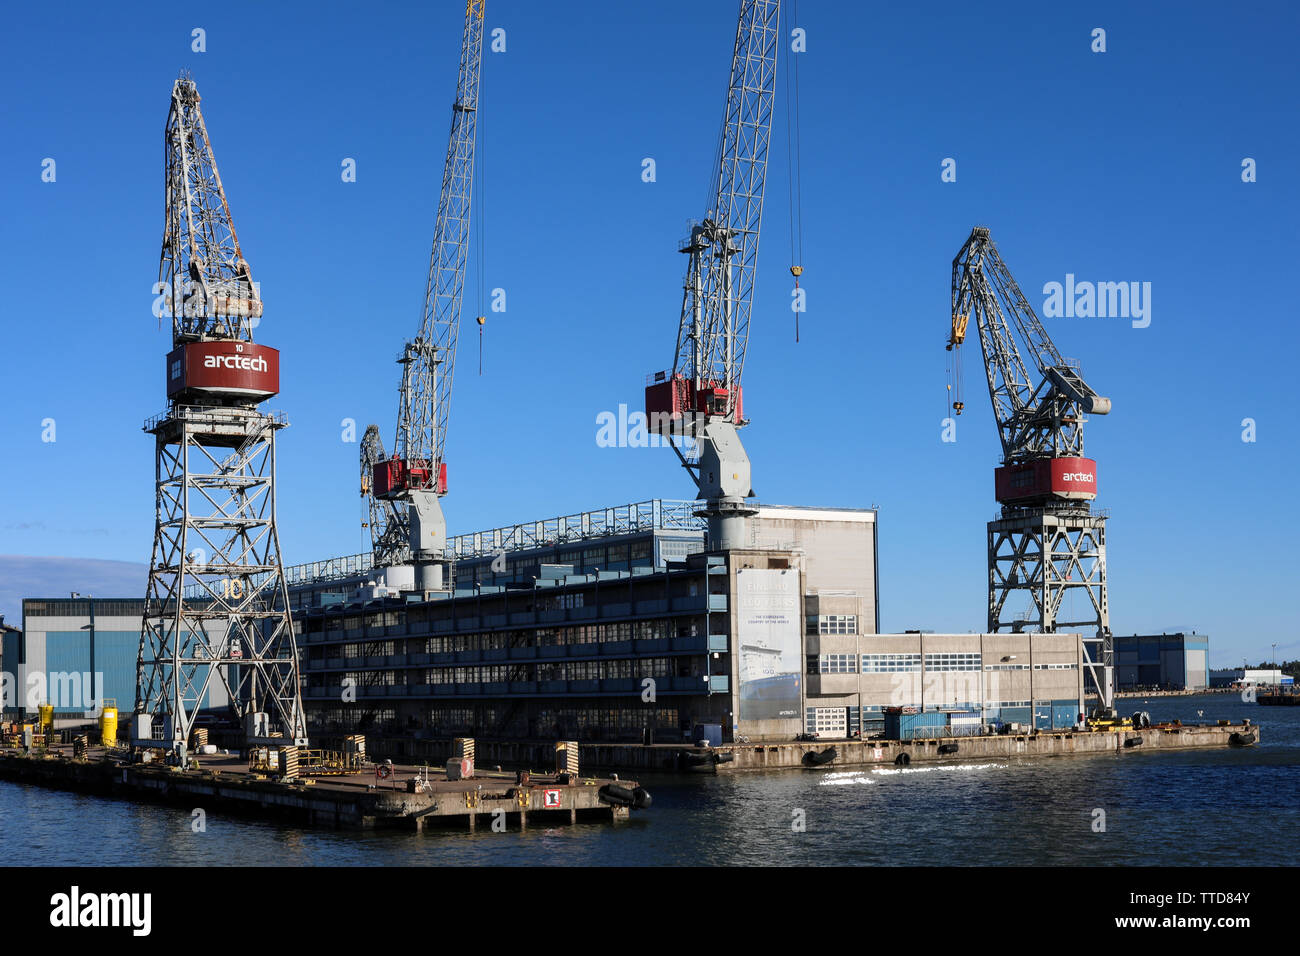 Hietalahti shipyard in evening sun in Helsinki, Finland Stock Photo